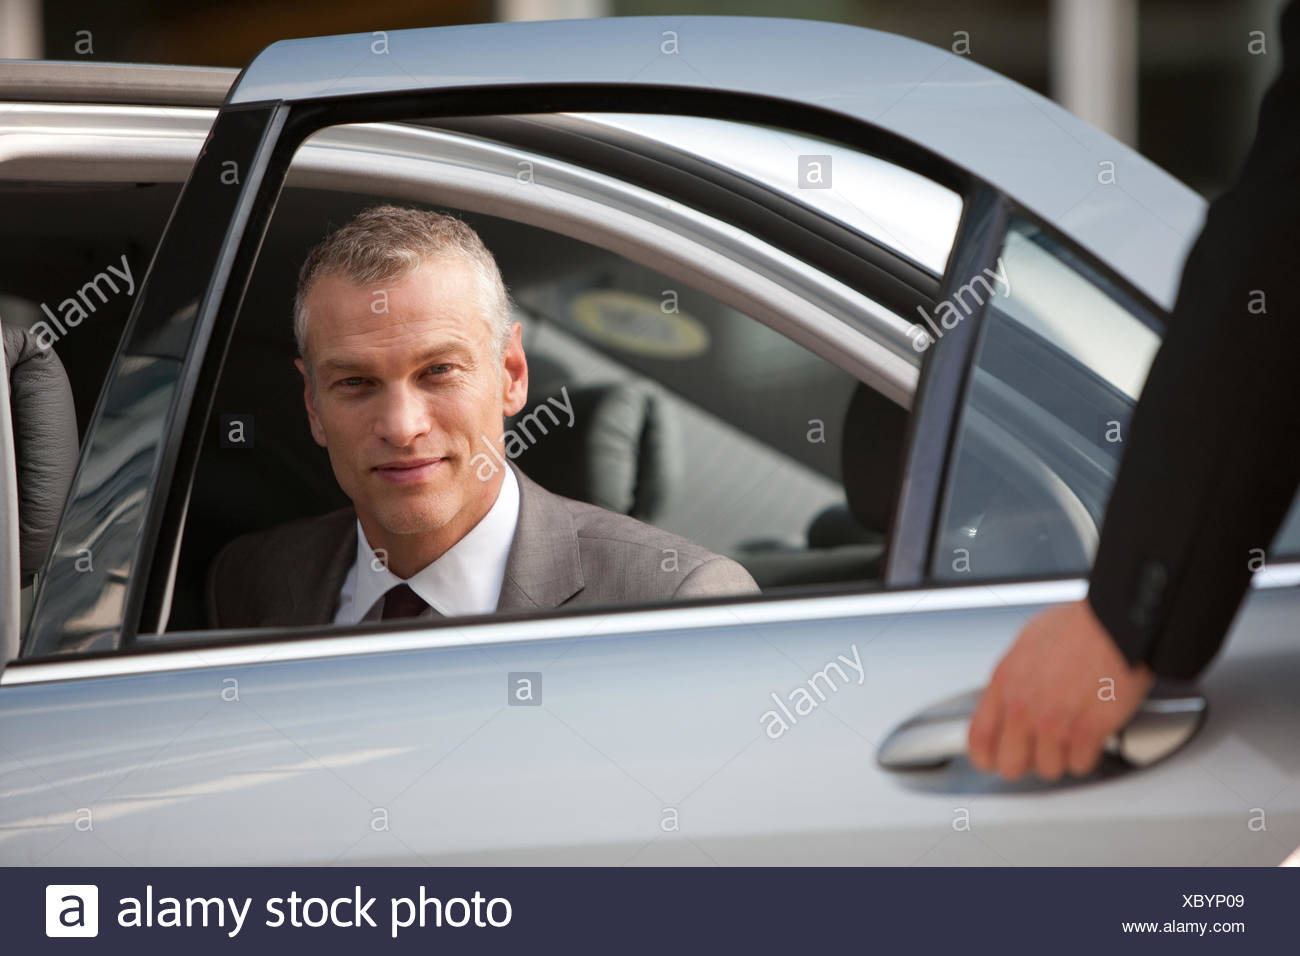 Chauffeur opening car door for businessman - Stock Image